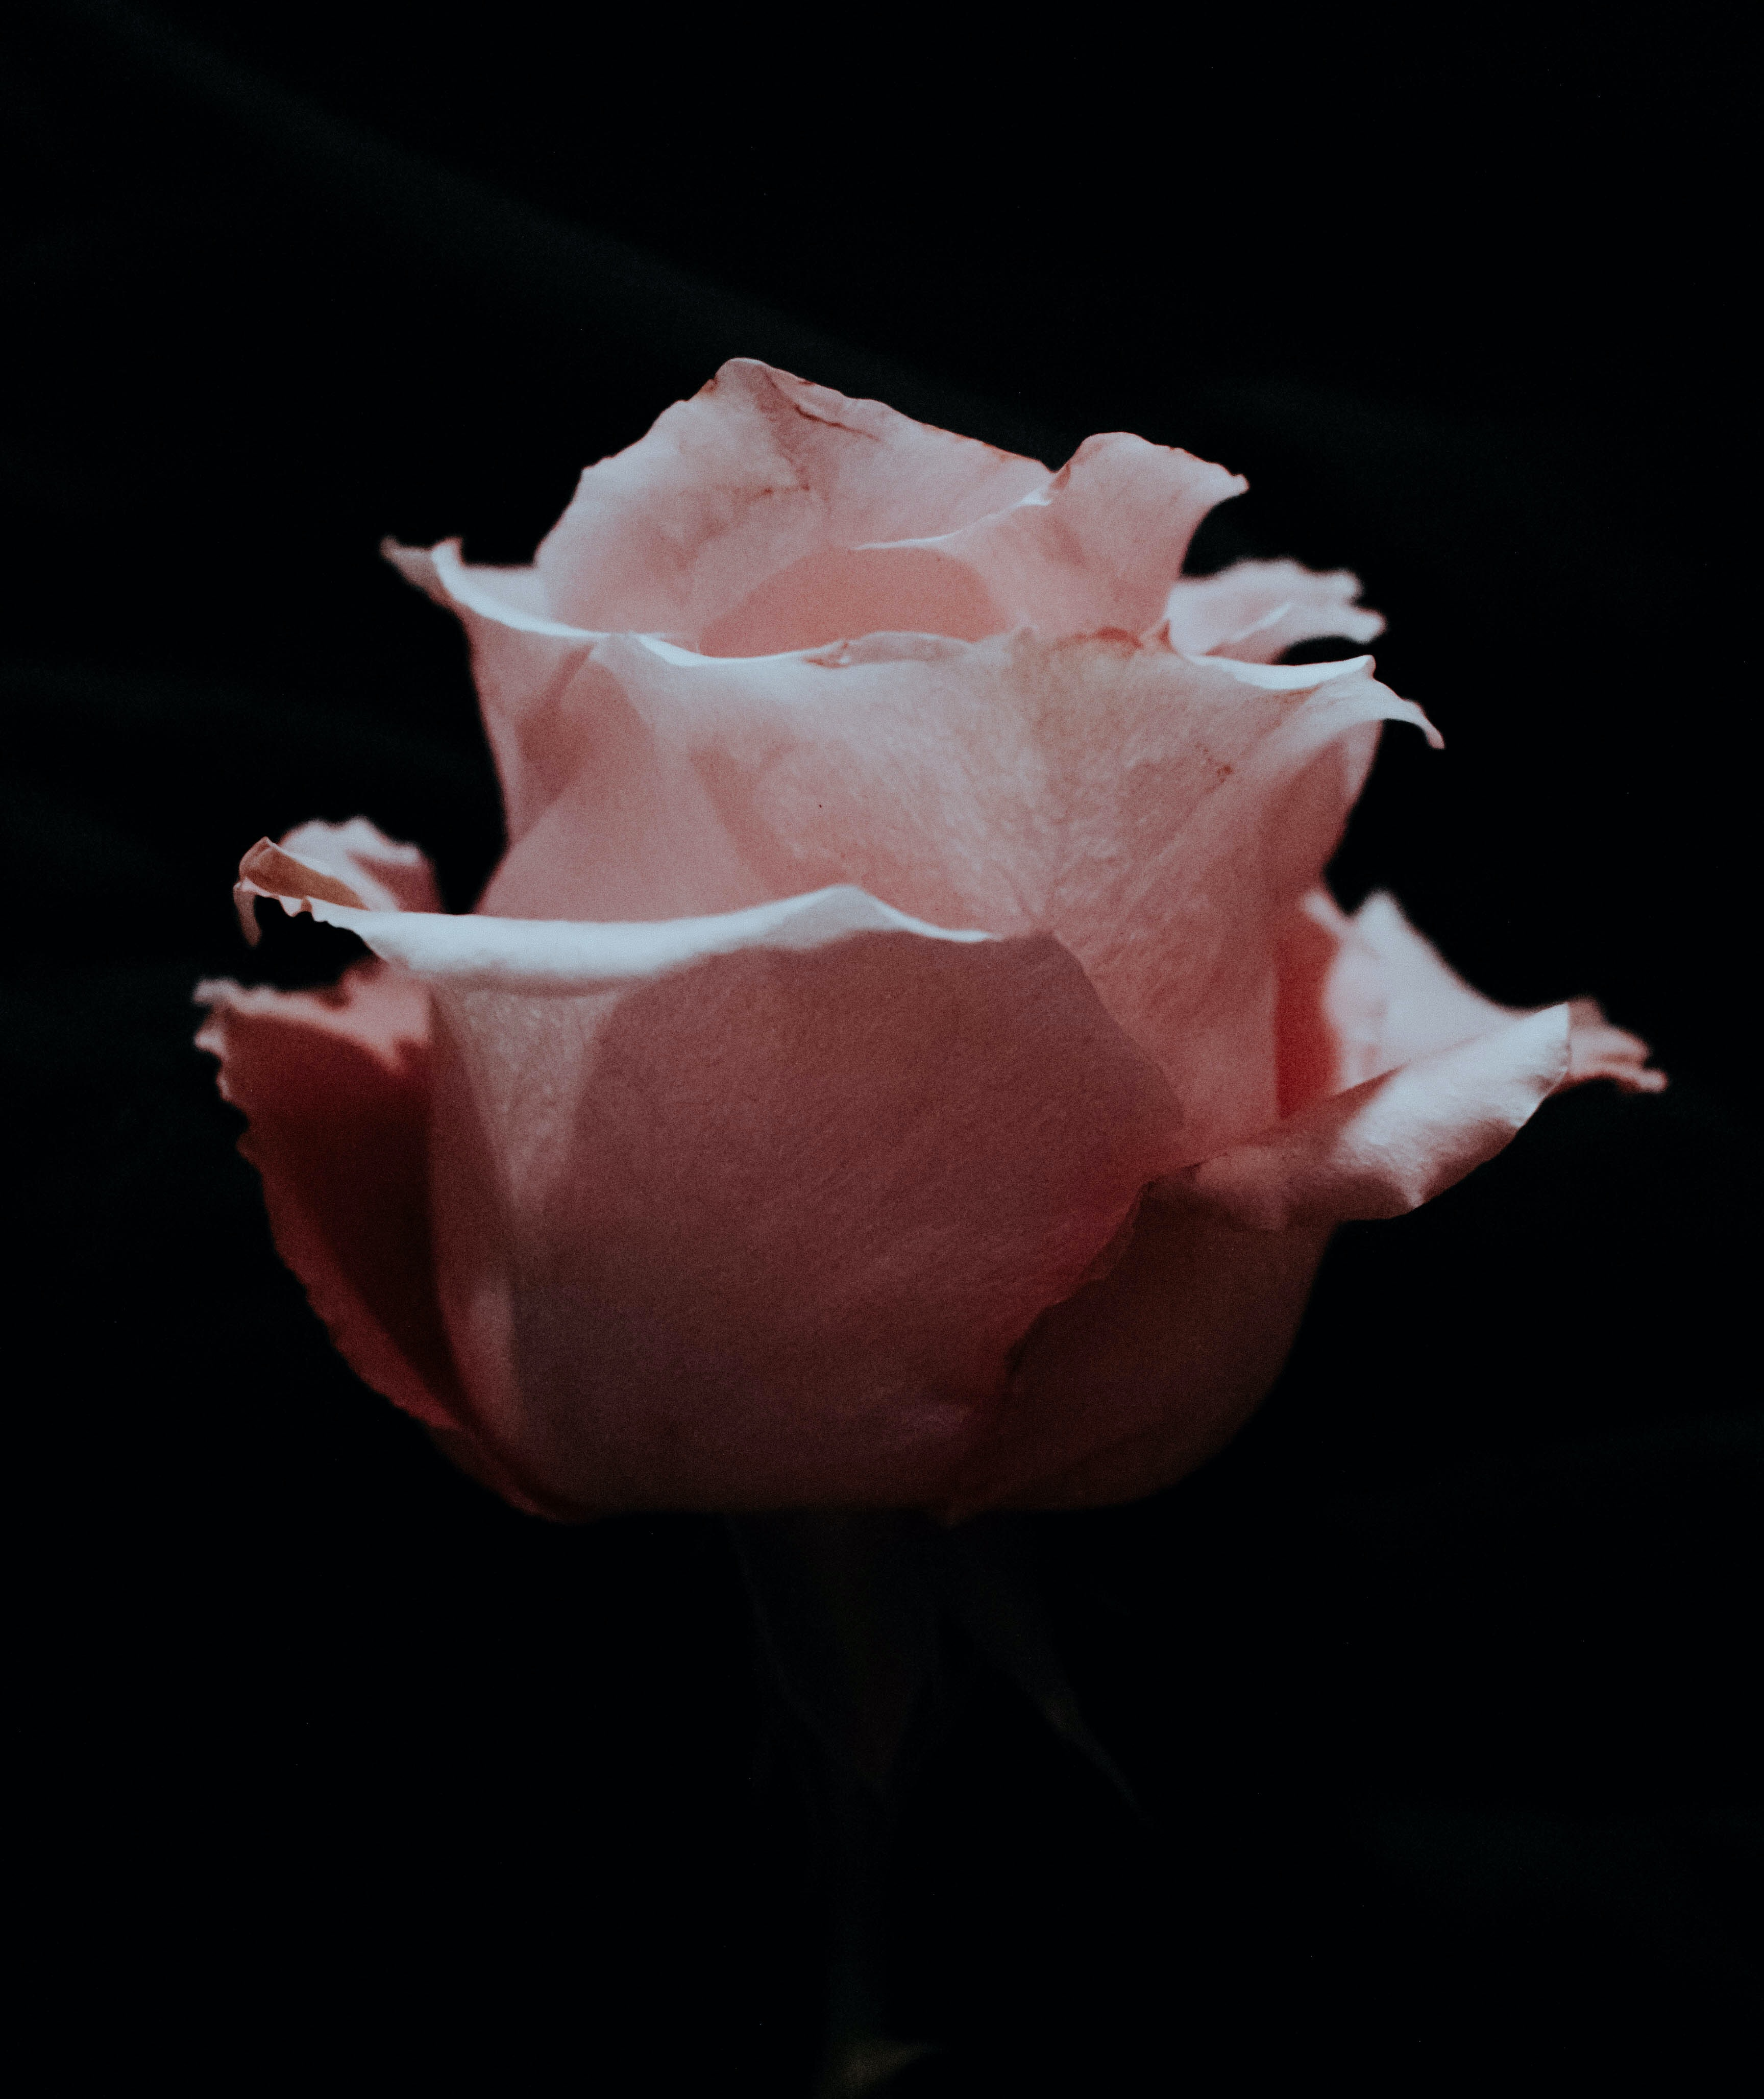 photo of blooming pink rose